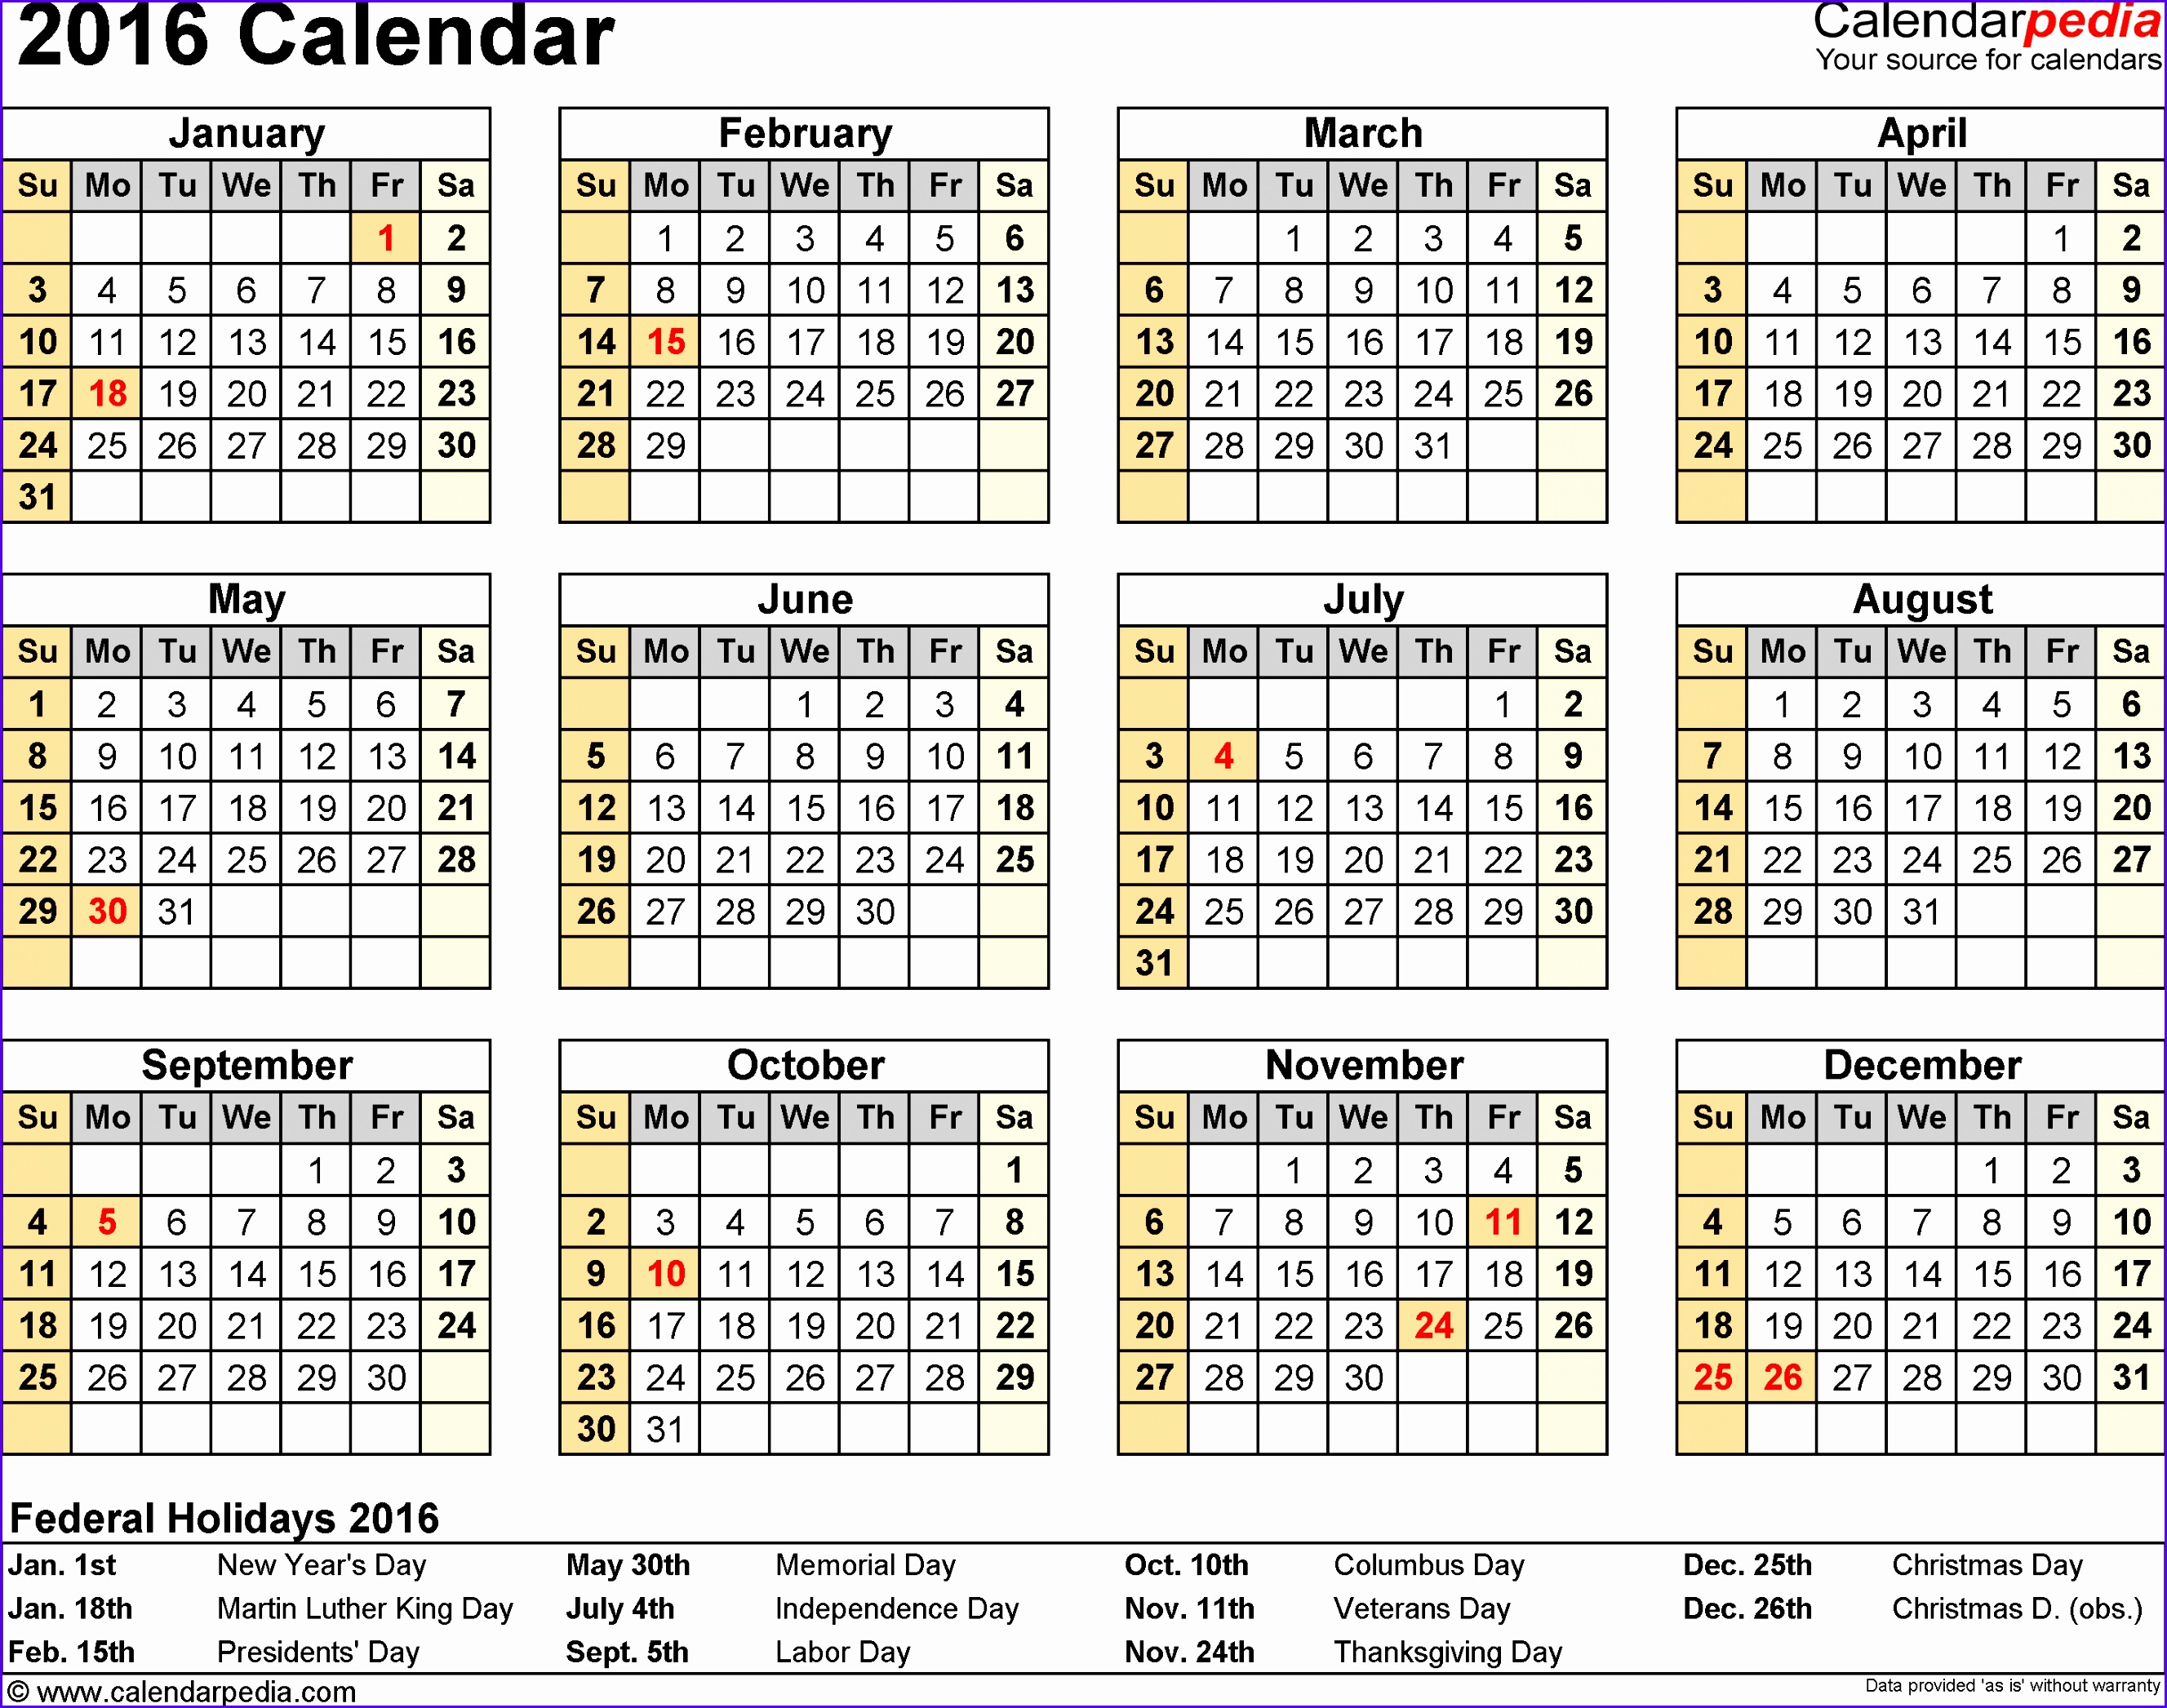 2016 Calendar Download 16 Free Printable Excel Templates Xls Microsoft Template Microsoft Excel Calendar Template Template 26552093